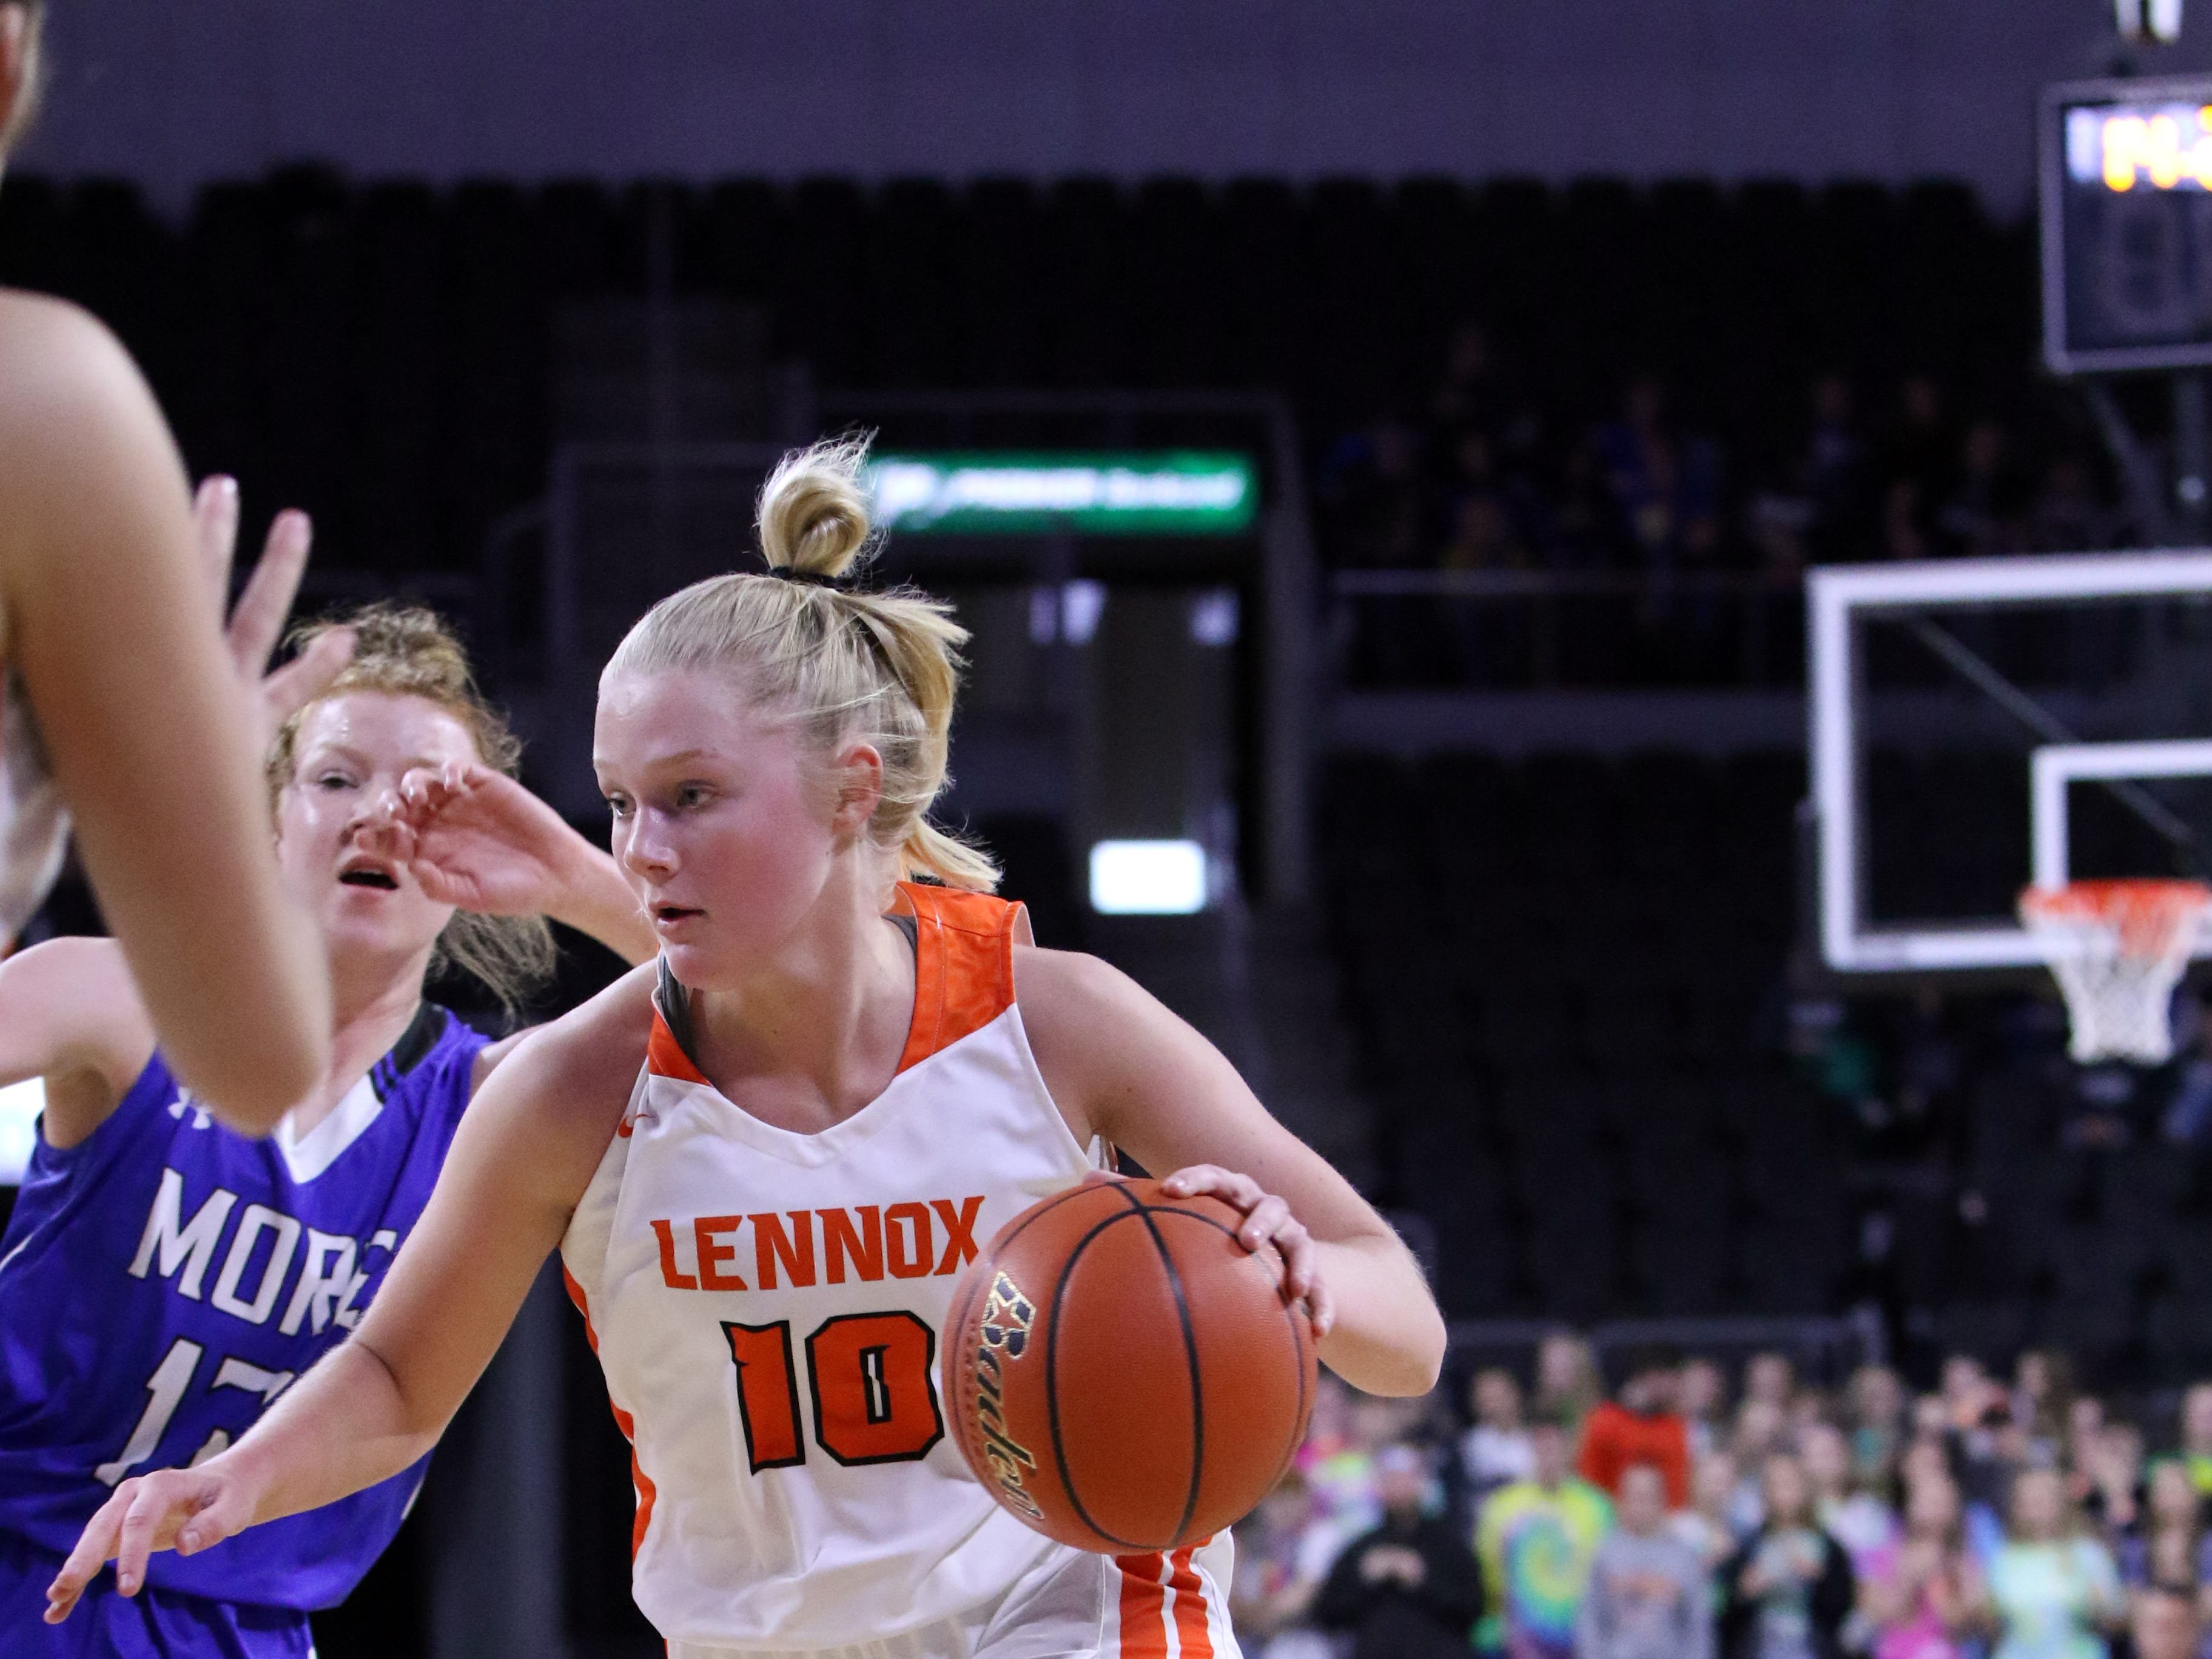 Msdysen Vlastuin of Lennox dribbles past the defense by Haleigh Timmer of St Thomas More during Thursday's game at the Premier Center.